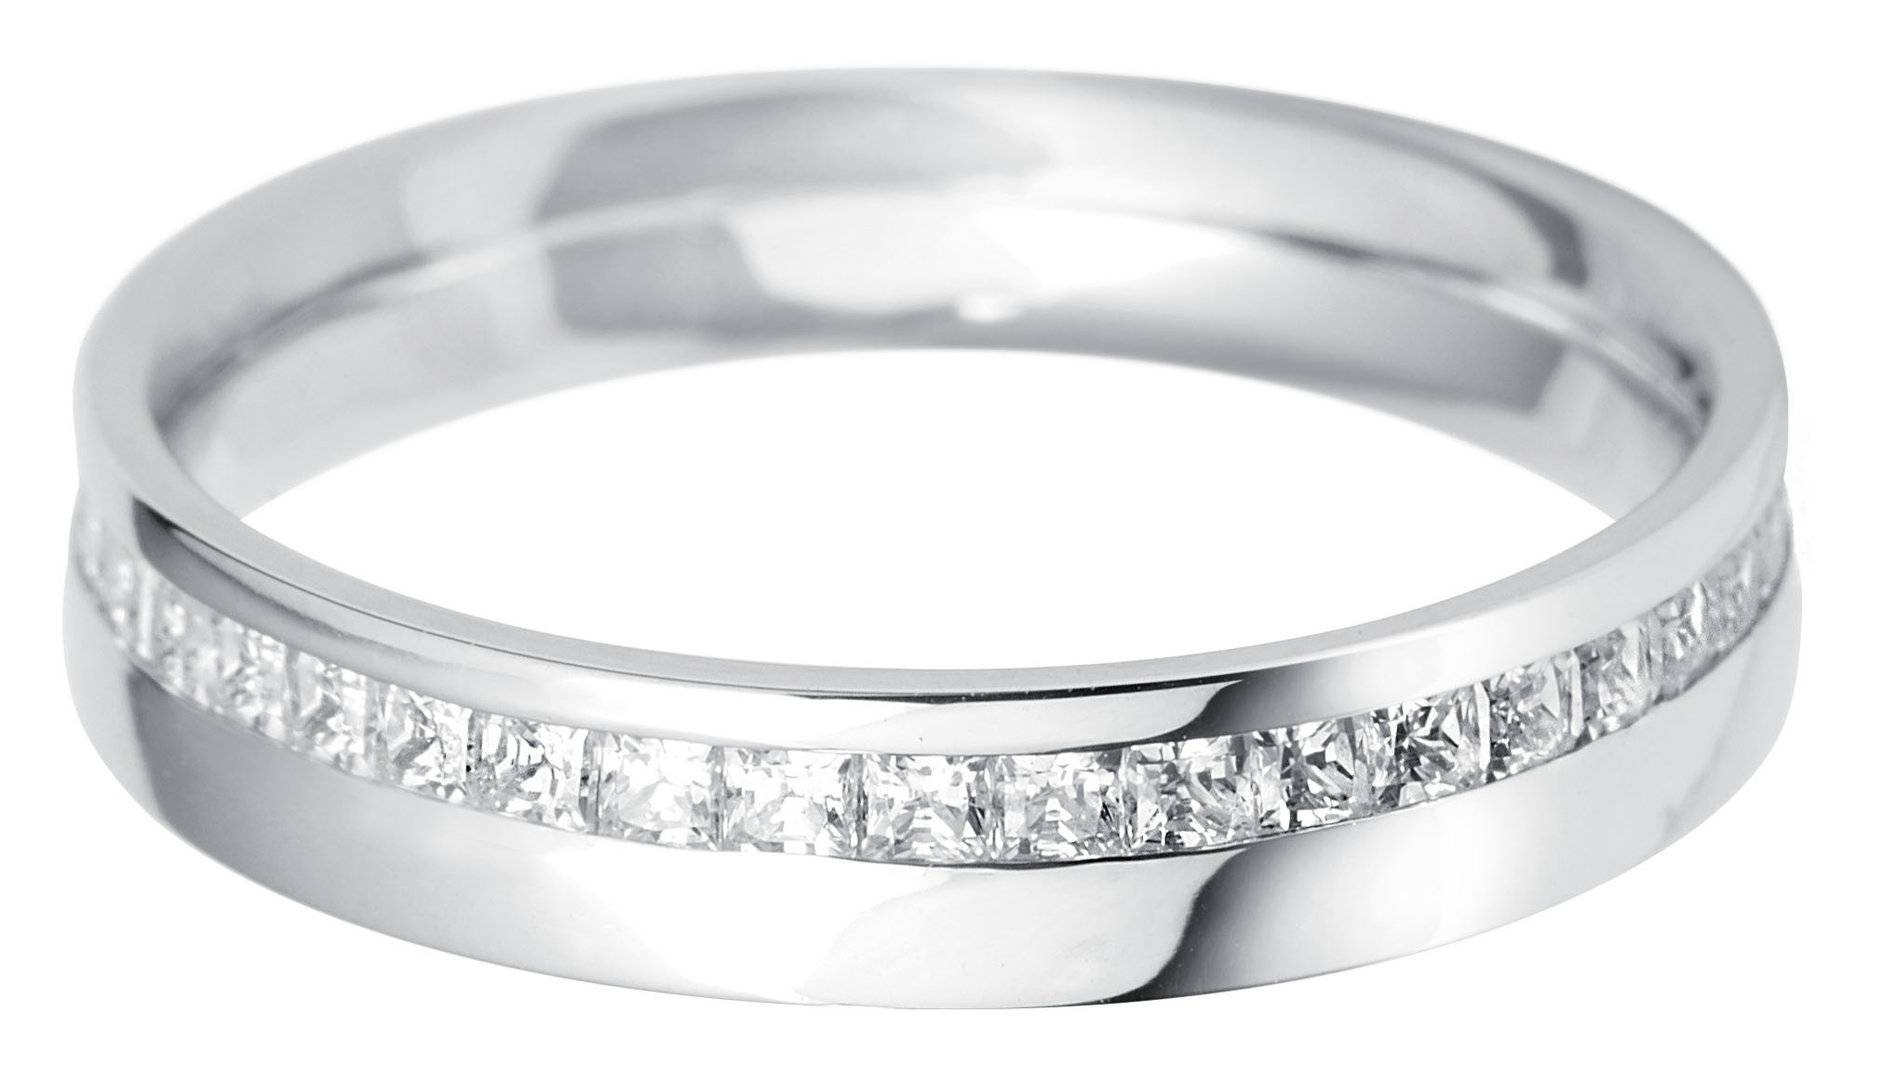 Palladium Offset Princess Cut Diamond Set Wedding Ring – Palladium Inside Palladium Wedding Rings (View 10 of 15)